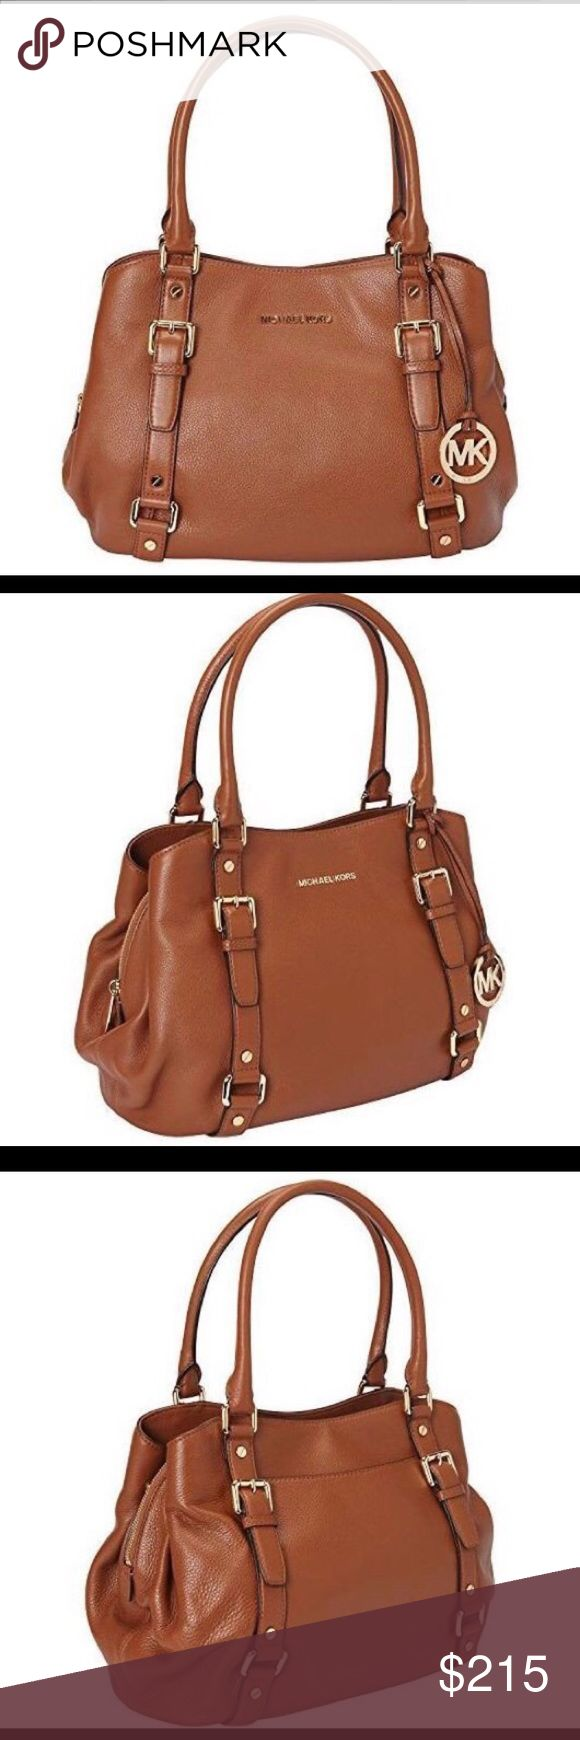 MK bedford large satchel Very good used condition! Interior zip pocket,four slip pockets,exterior slip pockets. Made from leather. 10.5 x 5 x 14.5 Michael Kors Bags Satchels